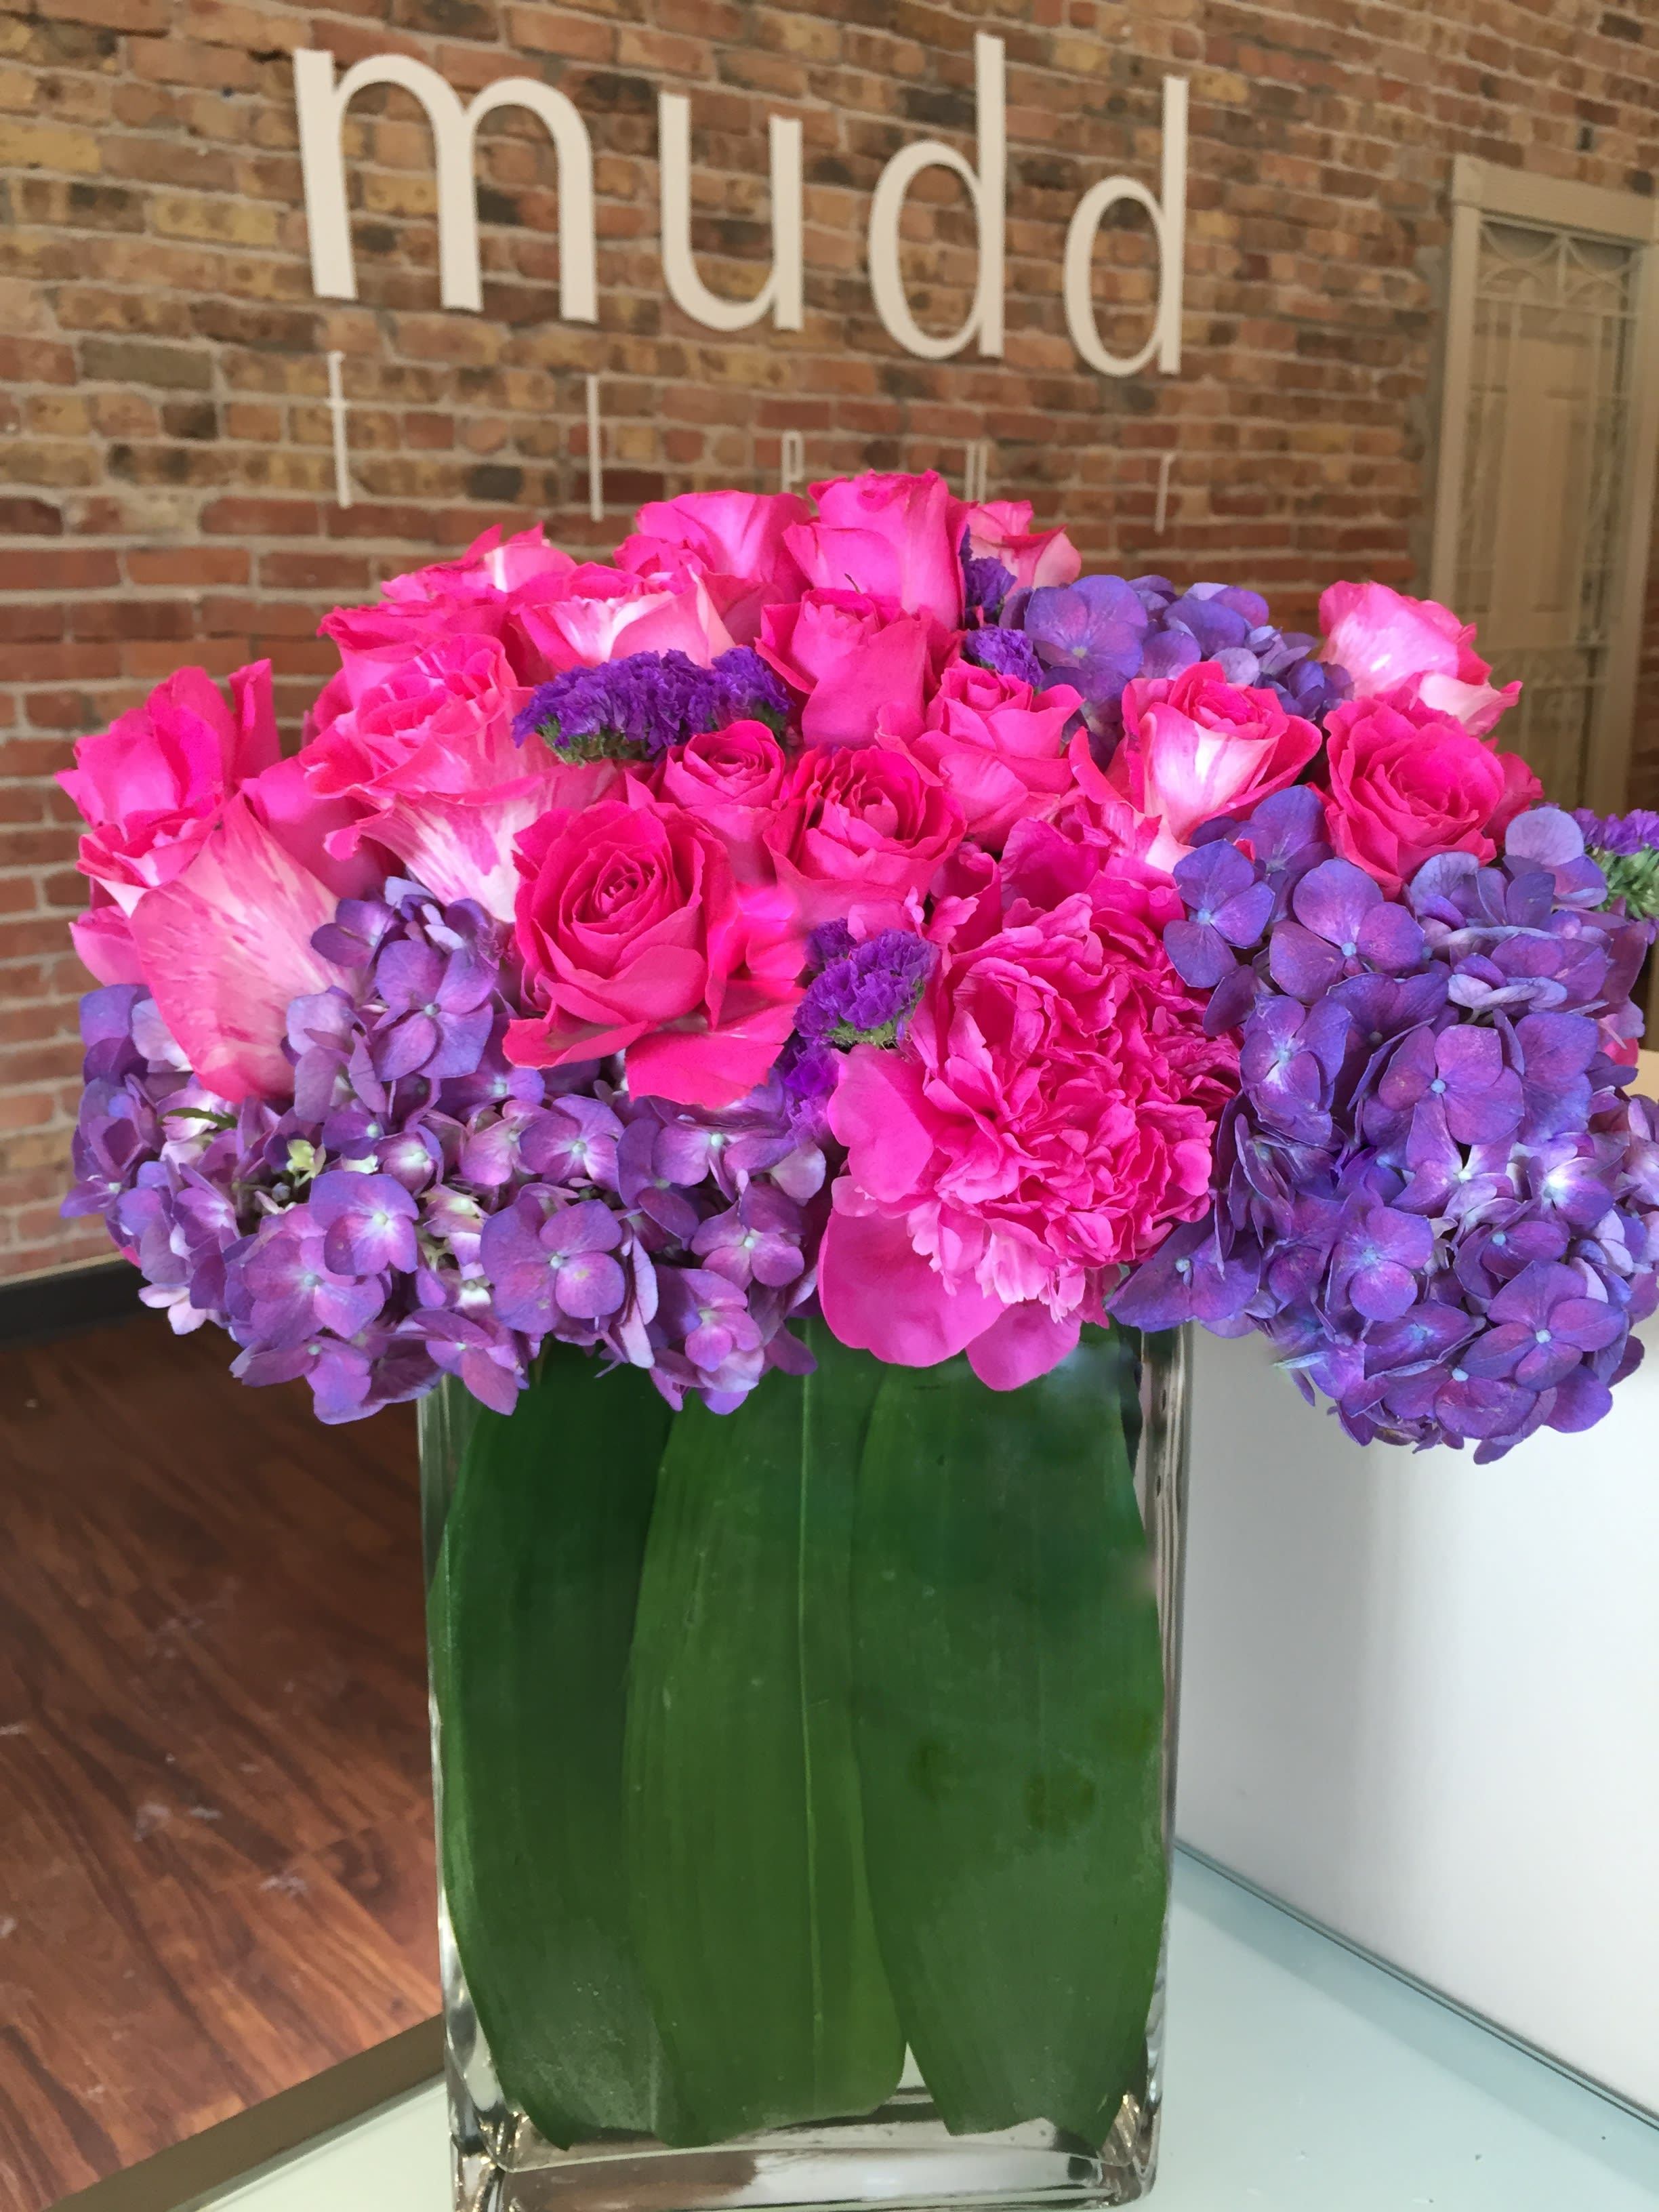 10 Kitchen And Home Decor Items Every 20 Something Needs: Bold Pink Peonies, Roses And Hydrangea In Chicago, IL